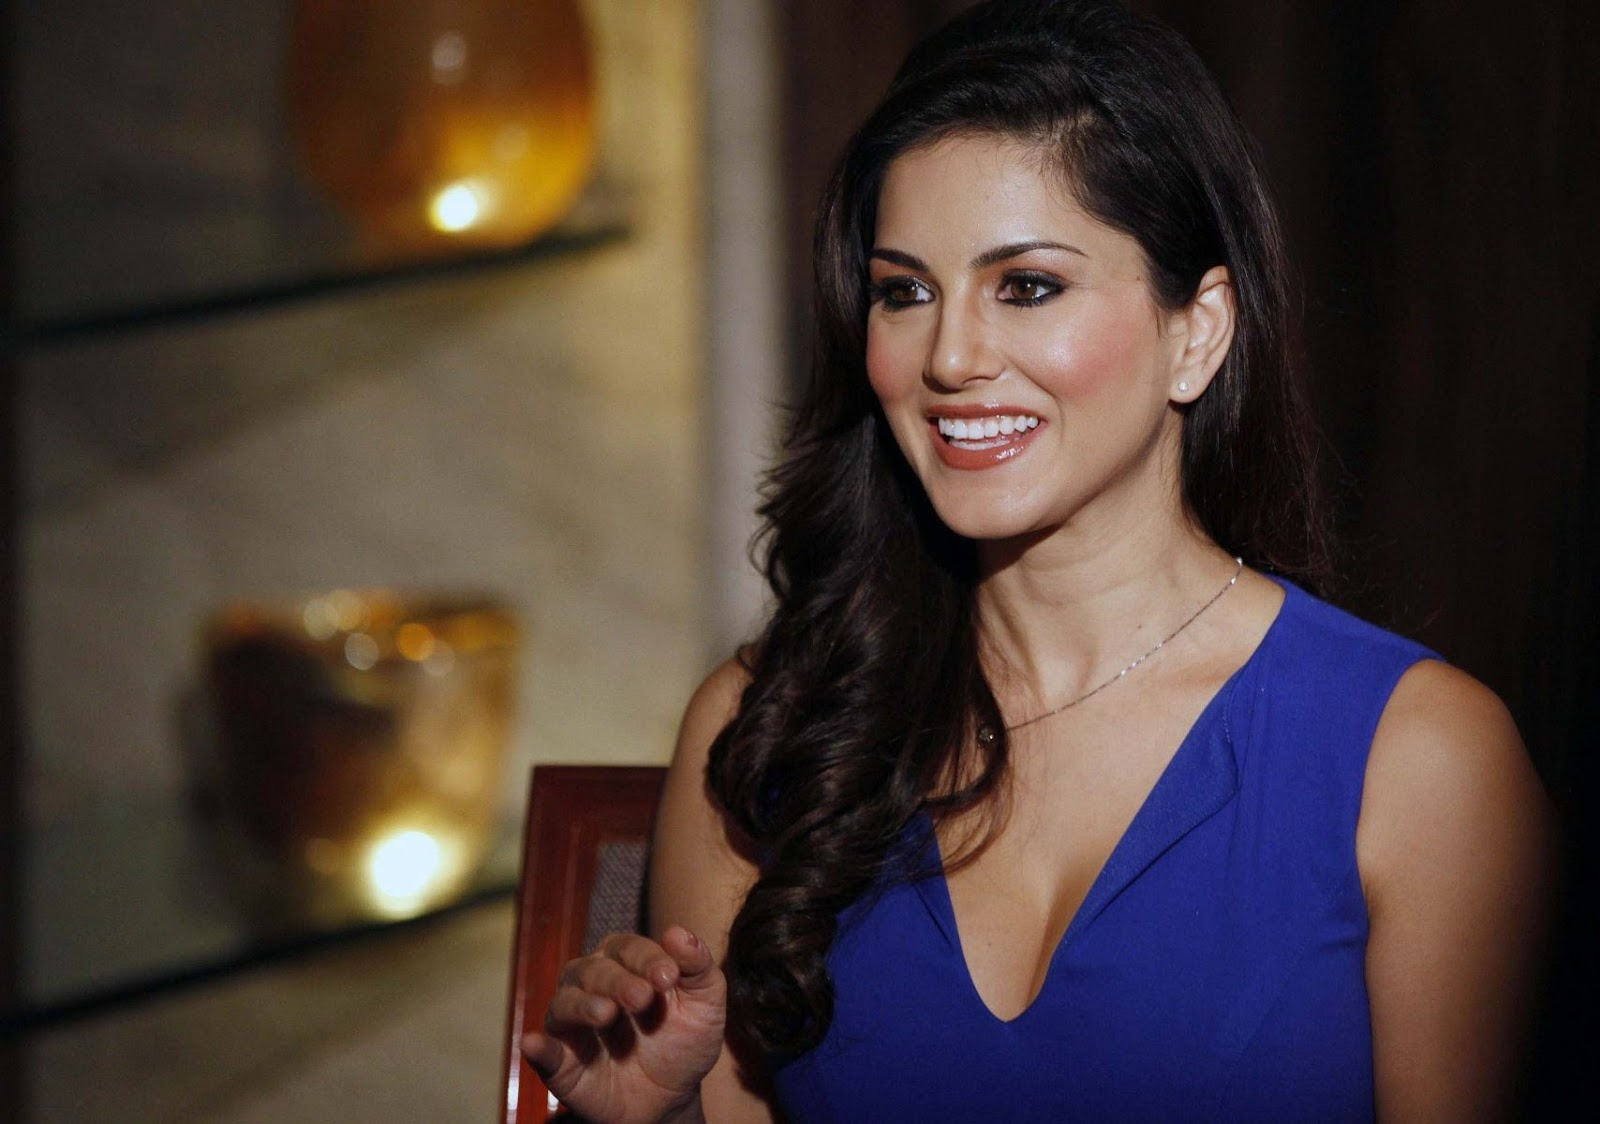 latest garam gossips and newsbreaks from bollywood and hollywood